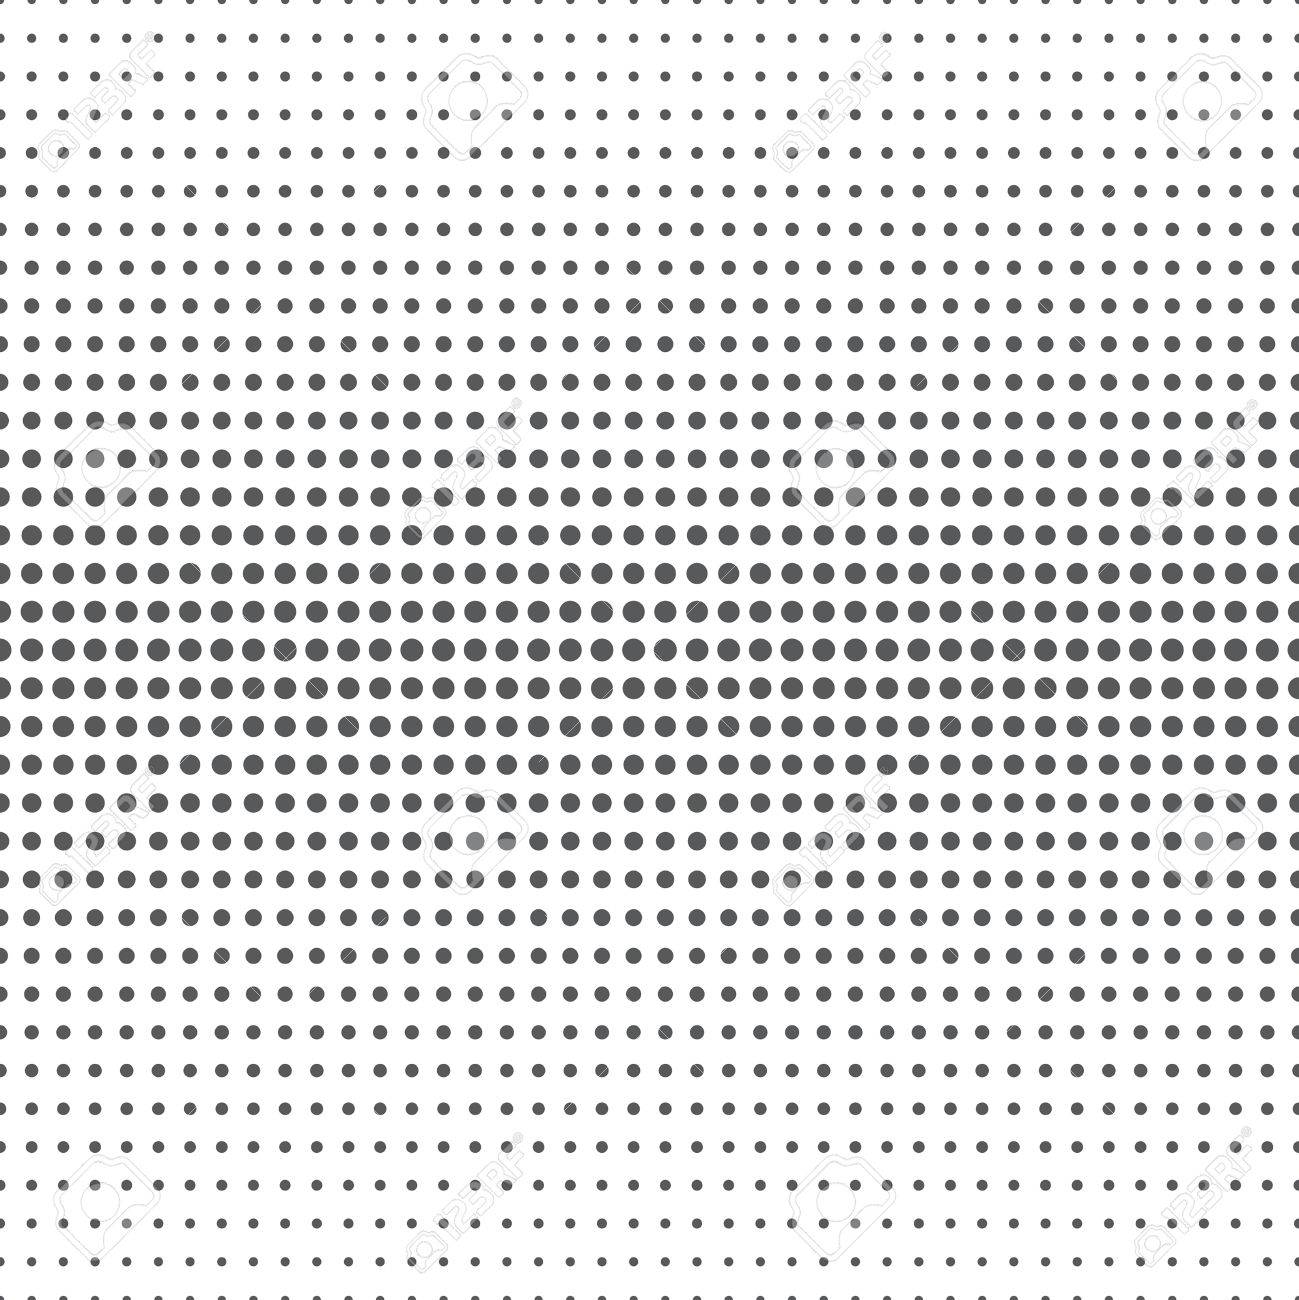 Dotted Grid Pattern